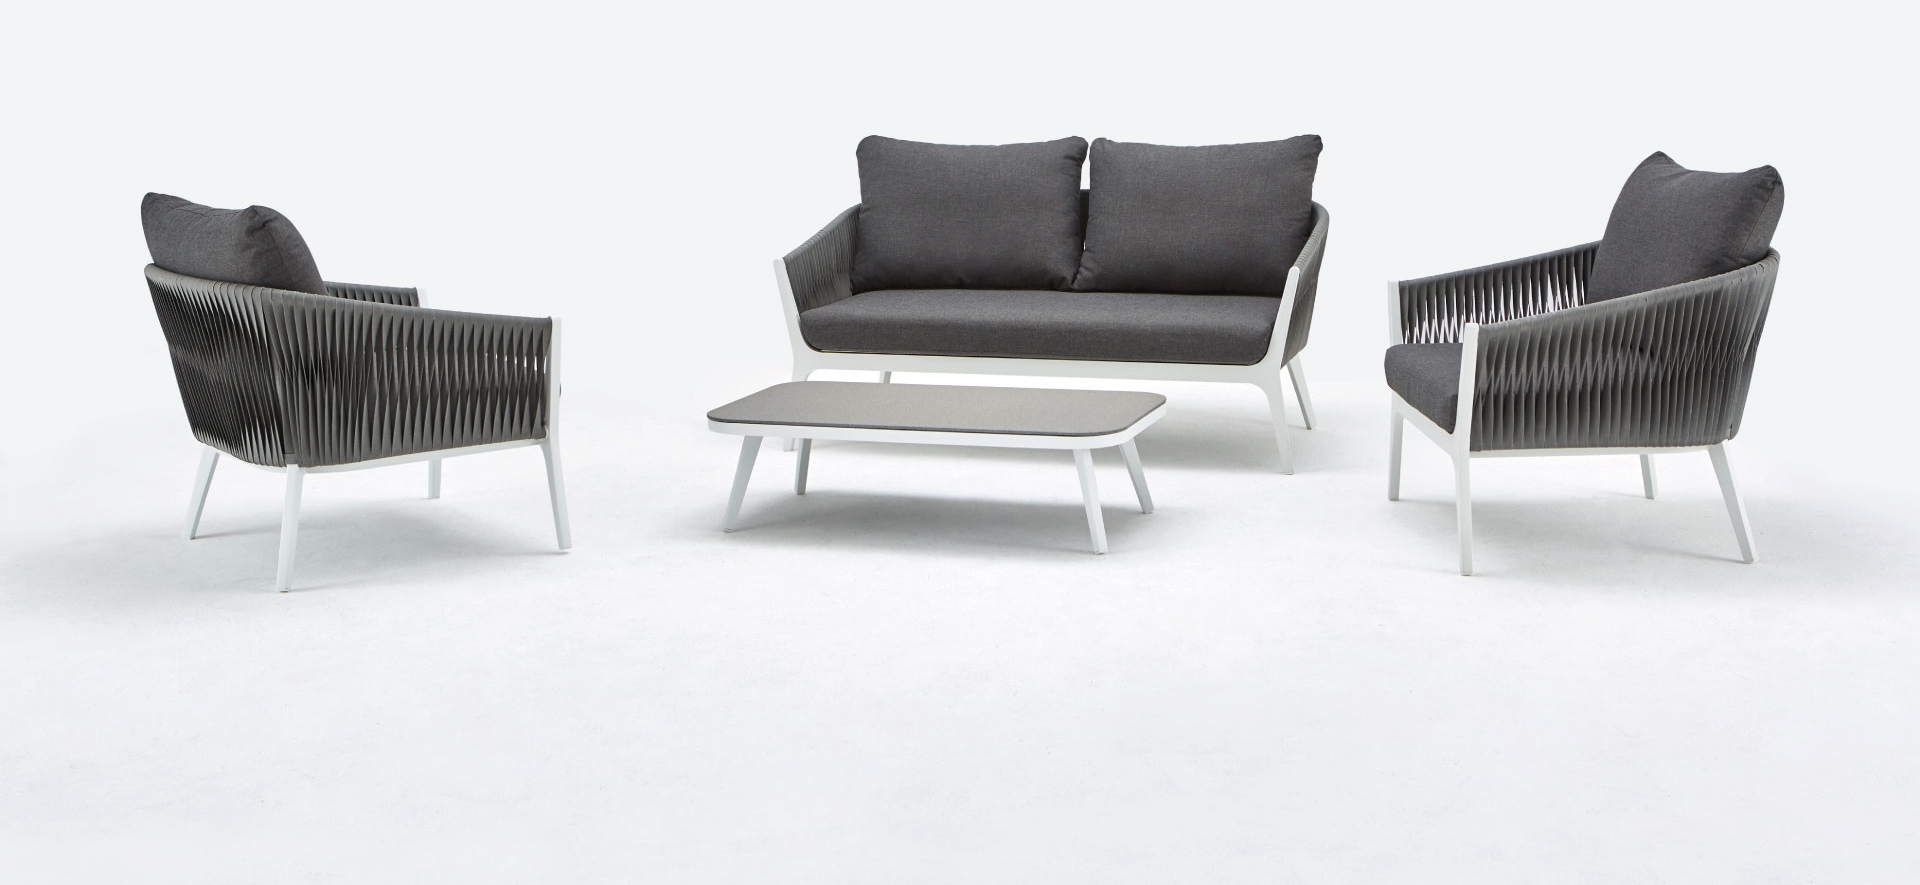 Cannes Outdoor Lounge Furniture